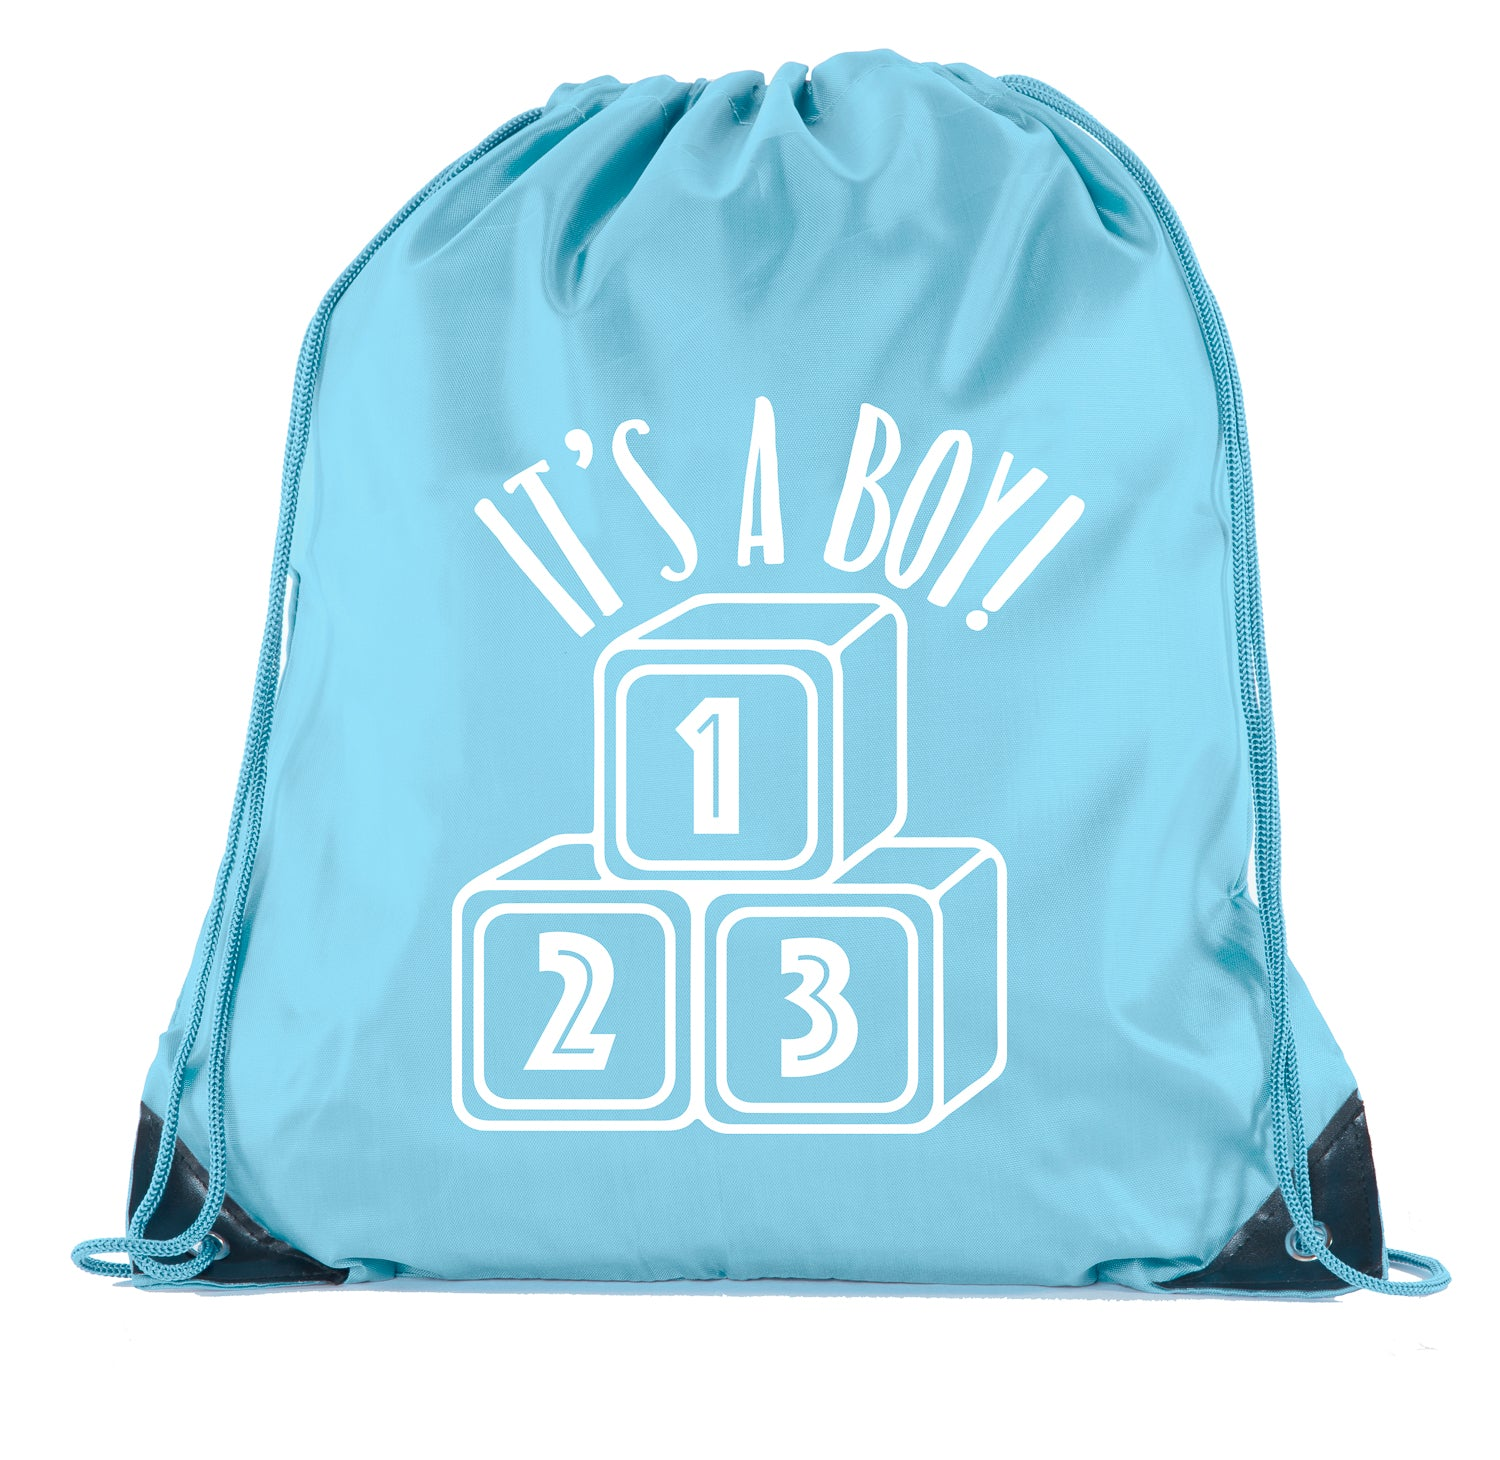 Accessory - Baby Shower Party Favors Favor| Baby Shower Drawstring Backpacks, Baby Shower Favors For Gender Reveal - It's A Boy